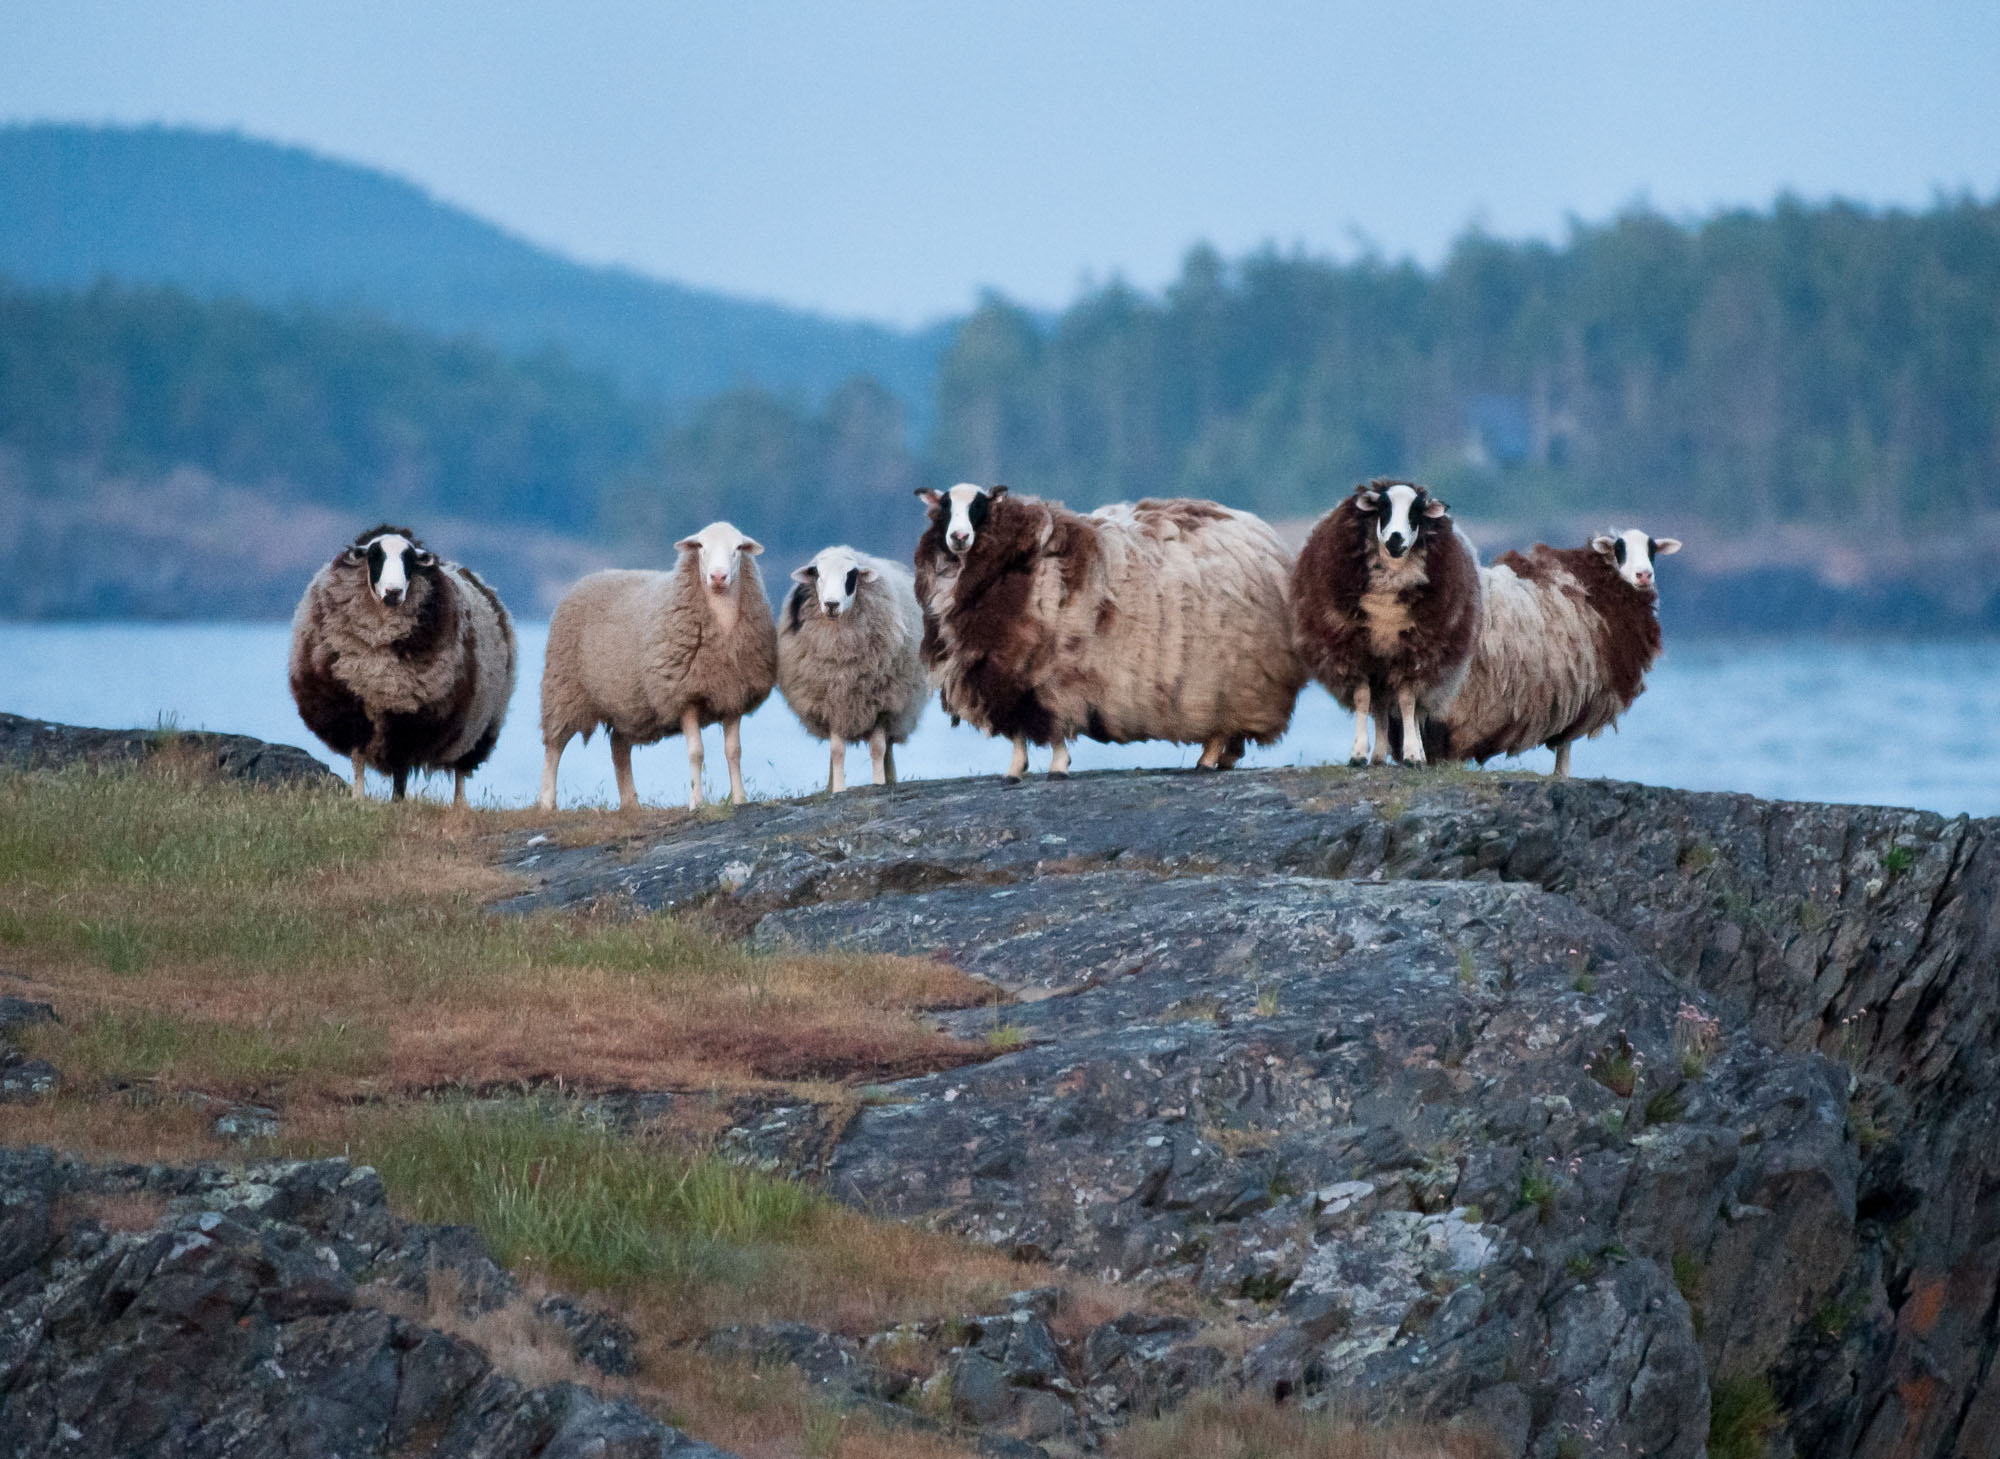 Sheep with their wooly coats